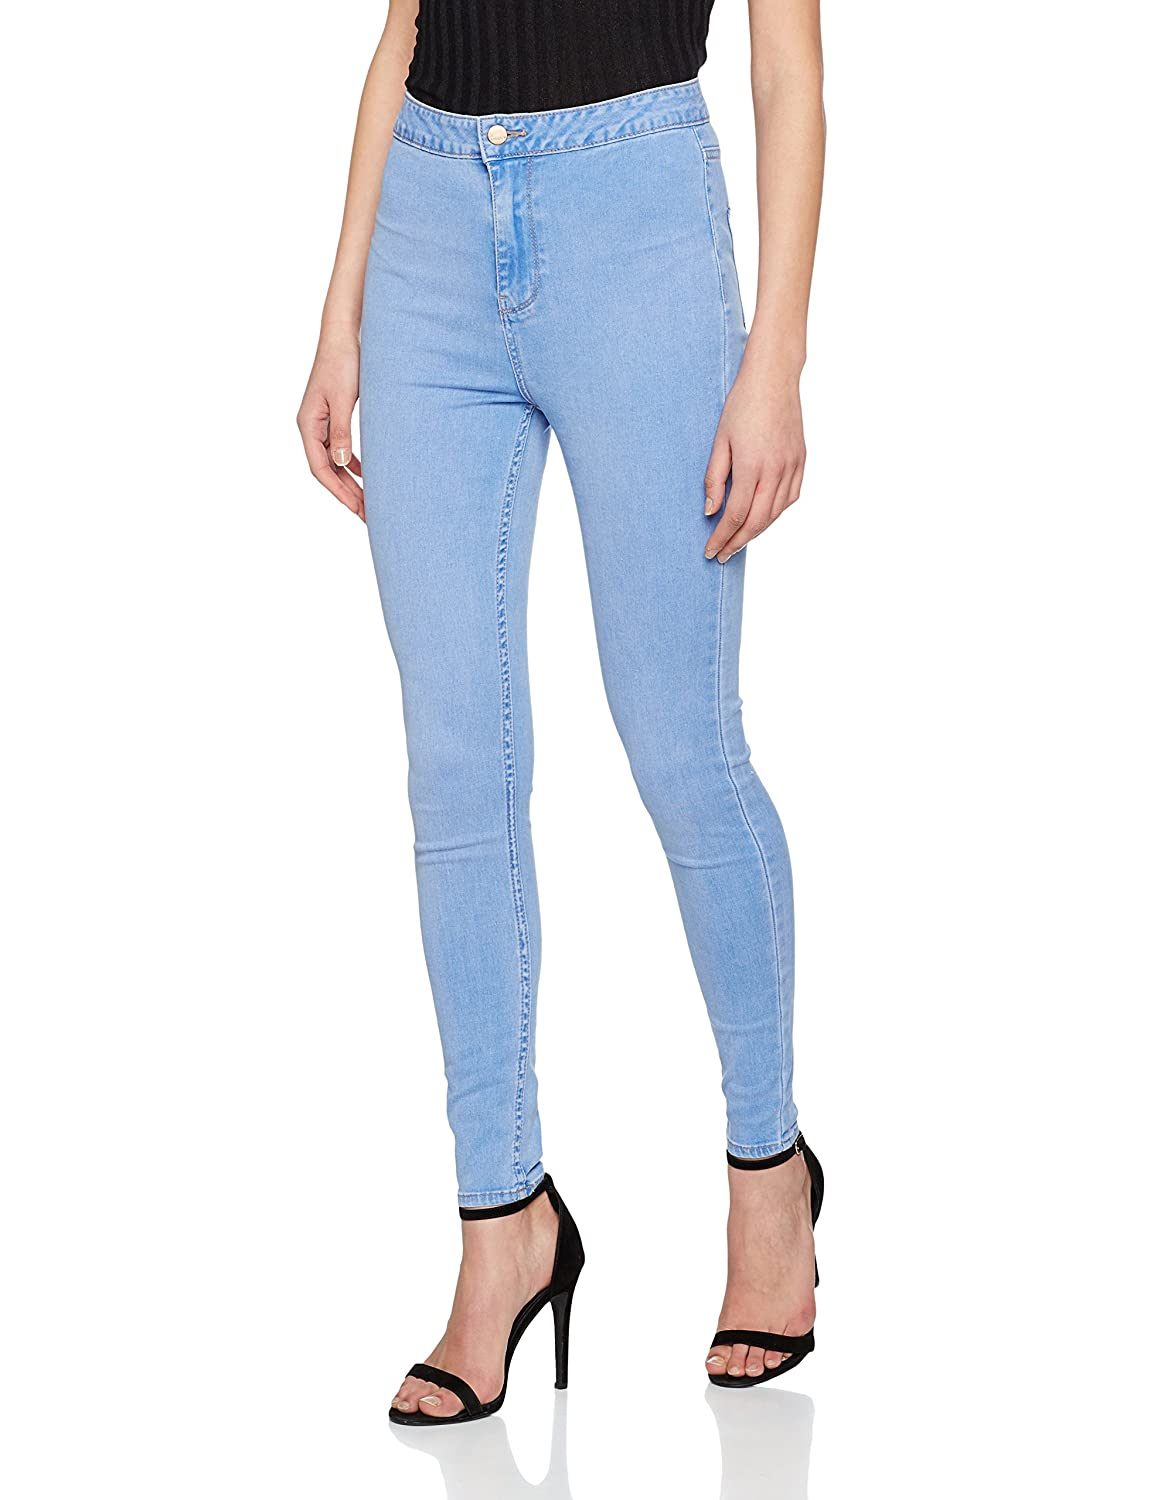 7211a71a2db New Look Women s Skinny Jeans